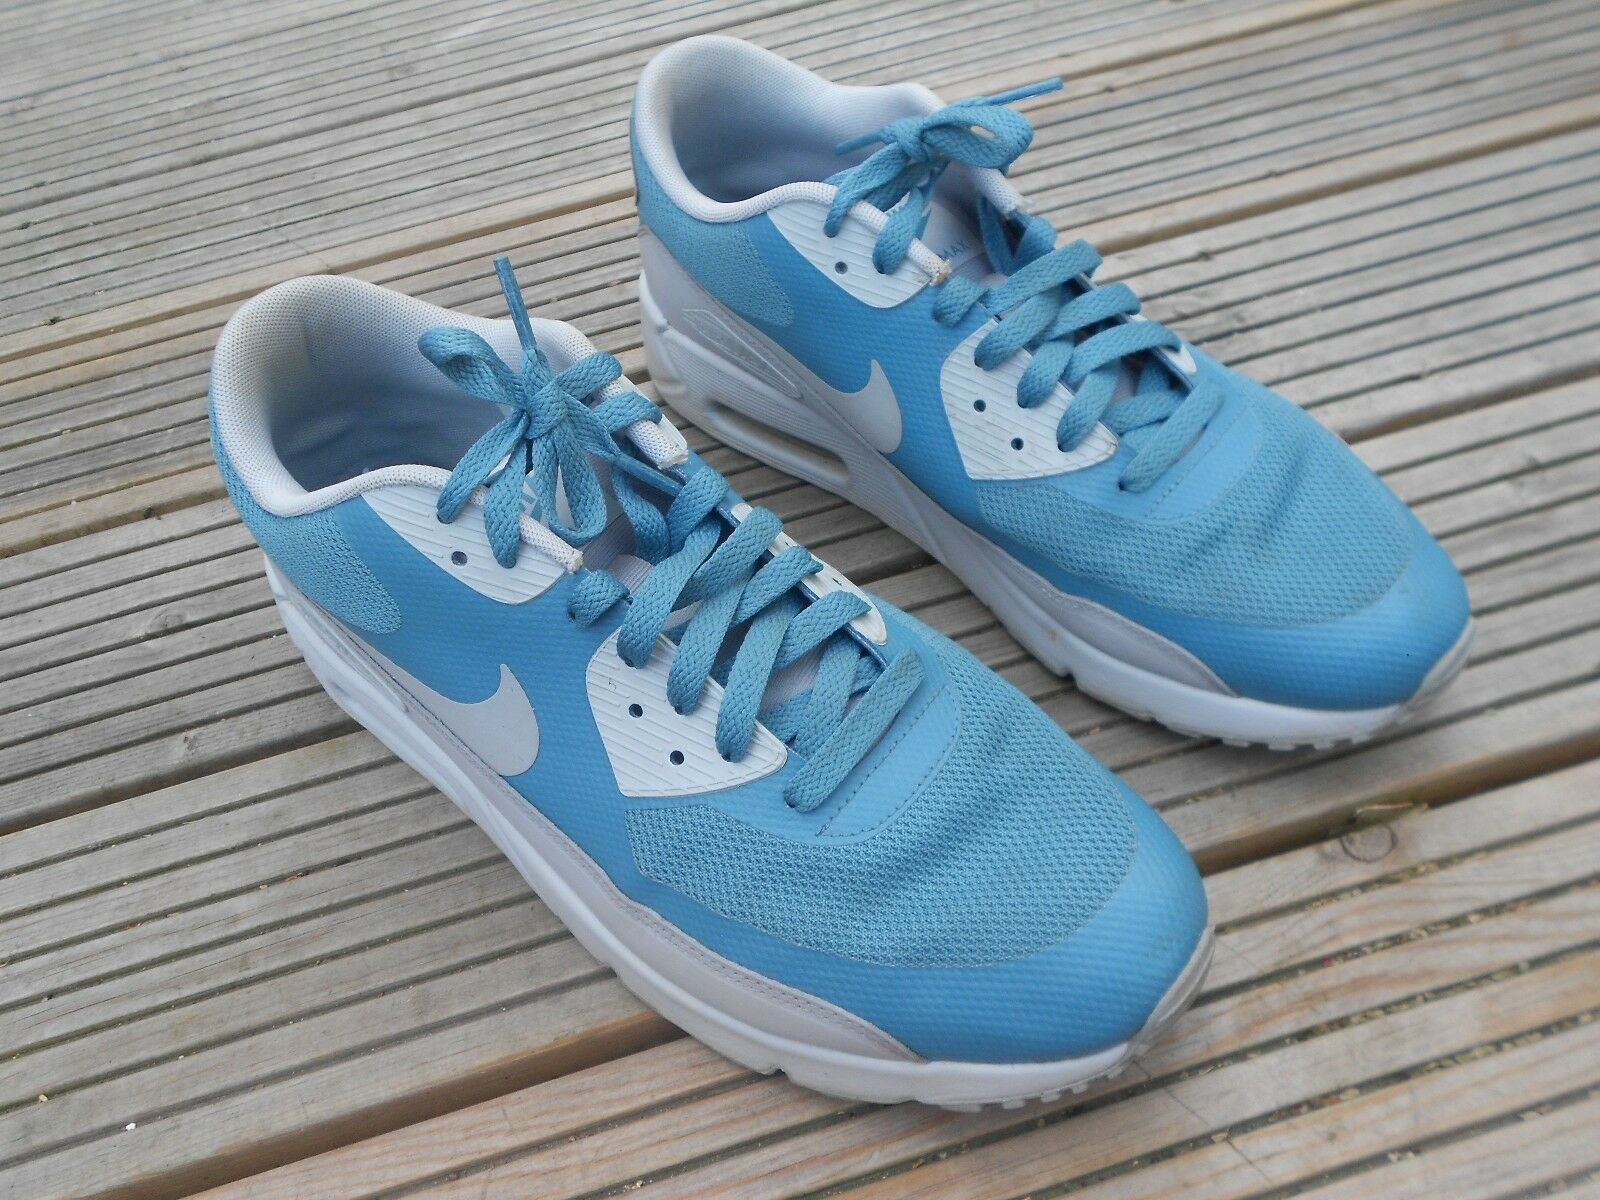 NIKE AIR MAX 90 ULTRA ESSENTIAL RUNNING TRAINERS UK SIZE 9 - IN GOOD CONDITION